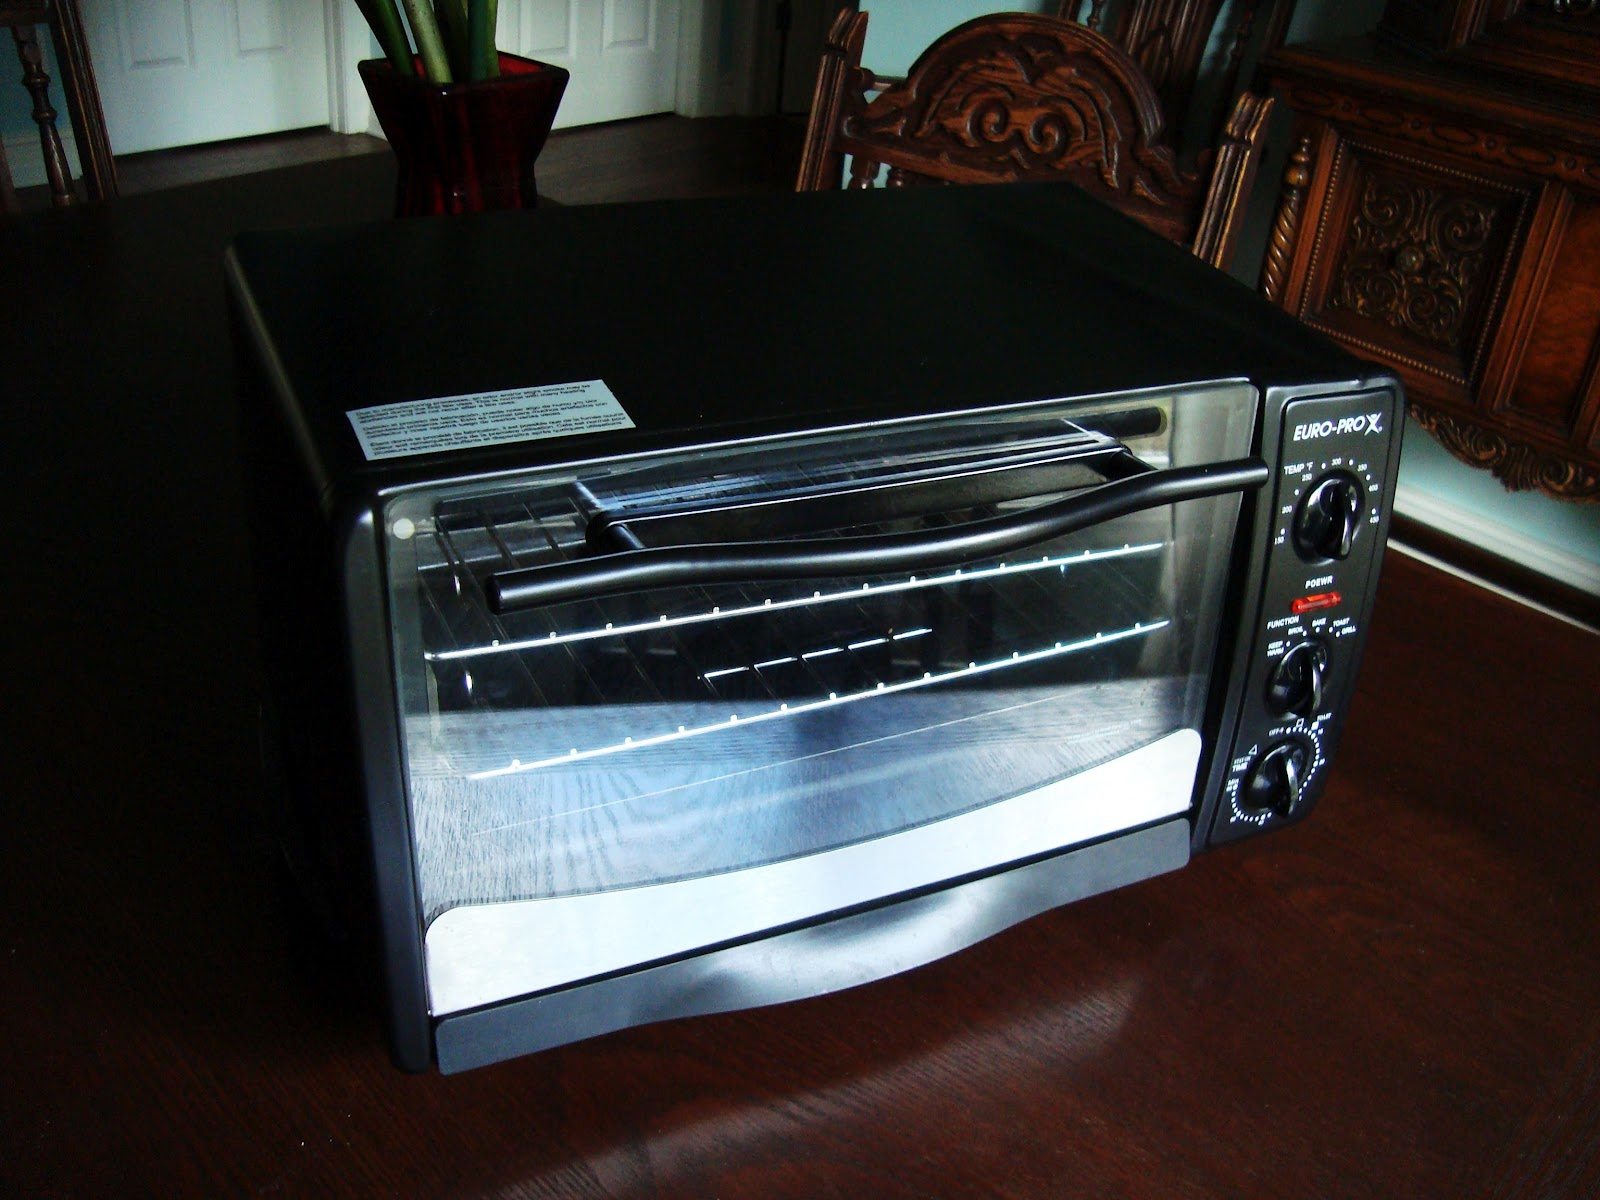 Real Pretty Thangs And Crap Euro Pro Toaster Oven In